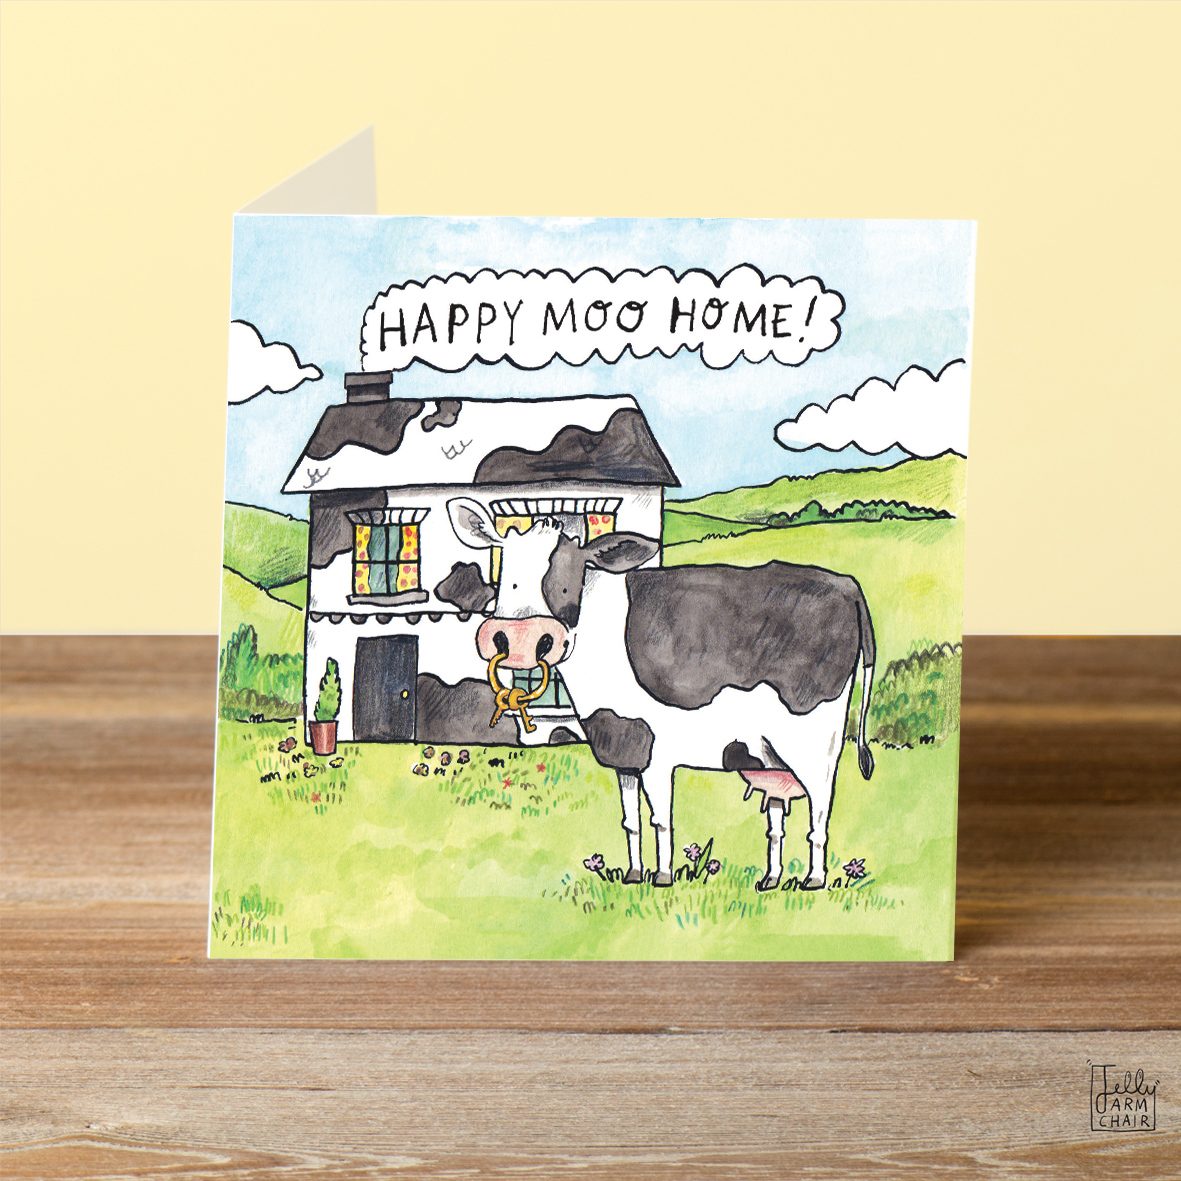 Moo-Home_-Happy-new-home-greetings-card.-Moving-house-greetings-card-with-cow-pun_FW11_OT